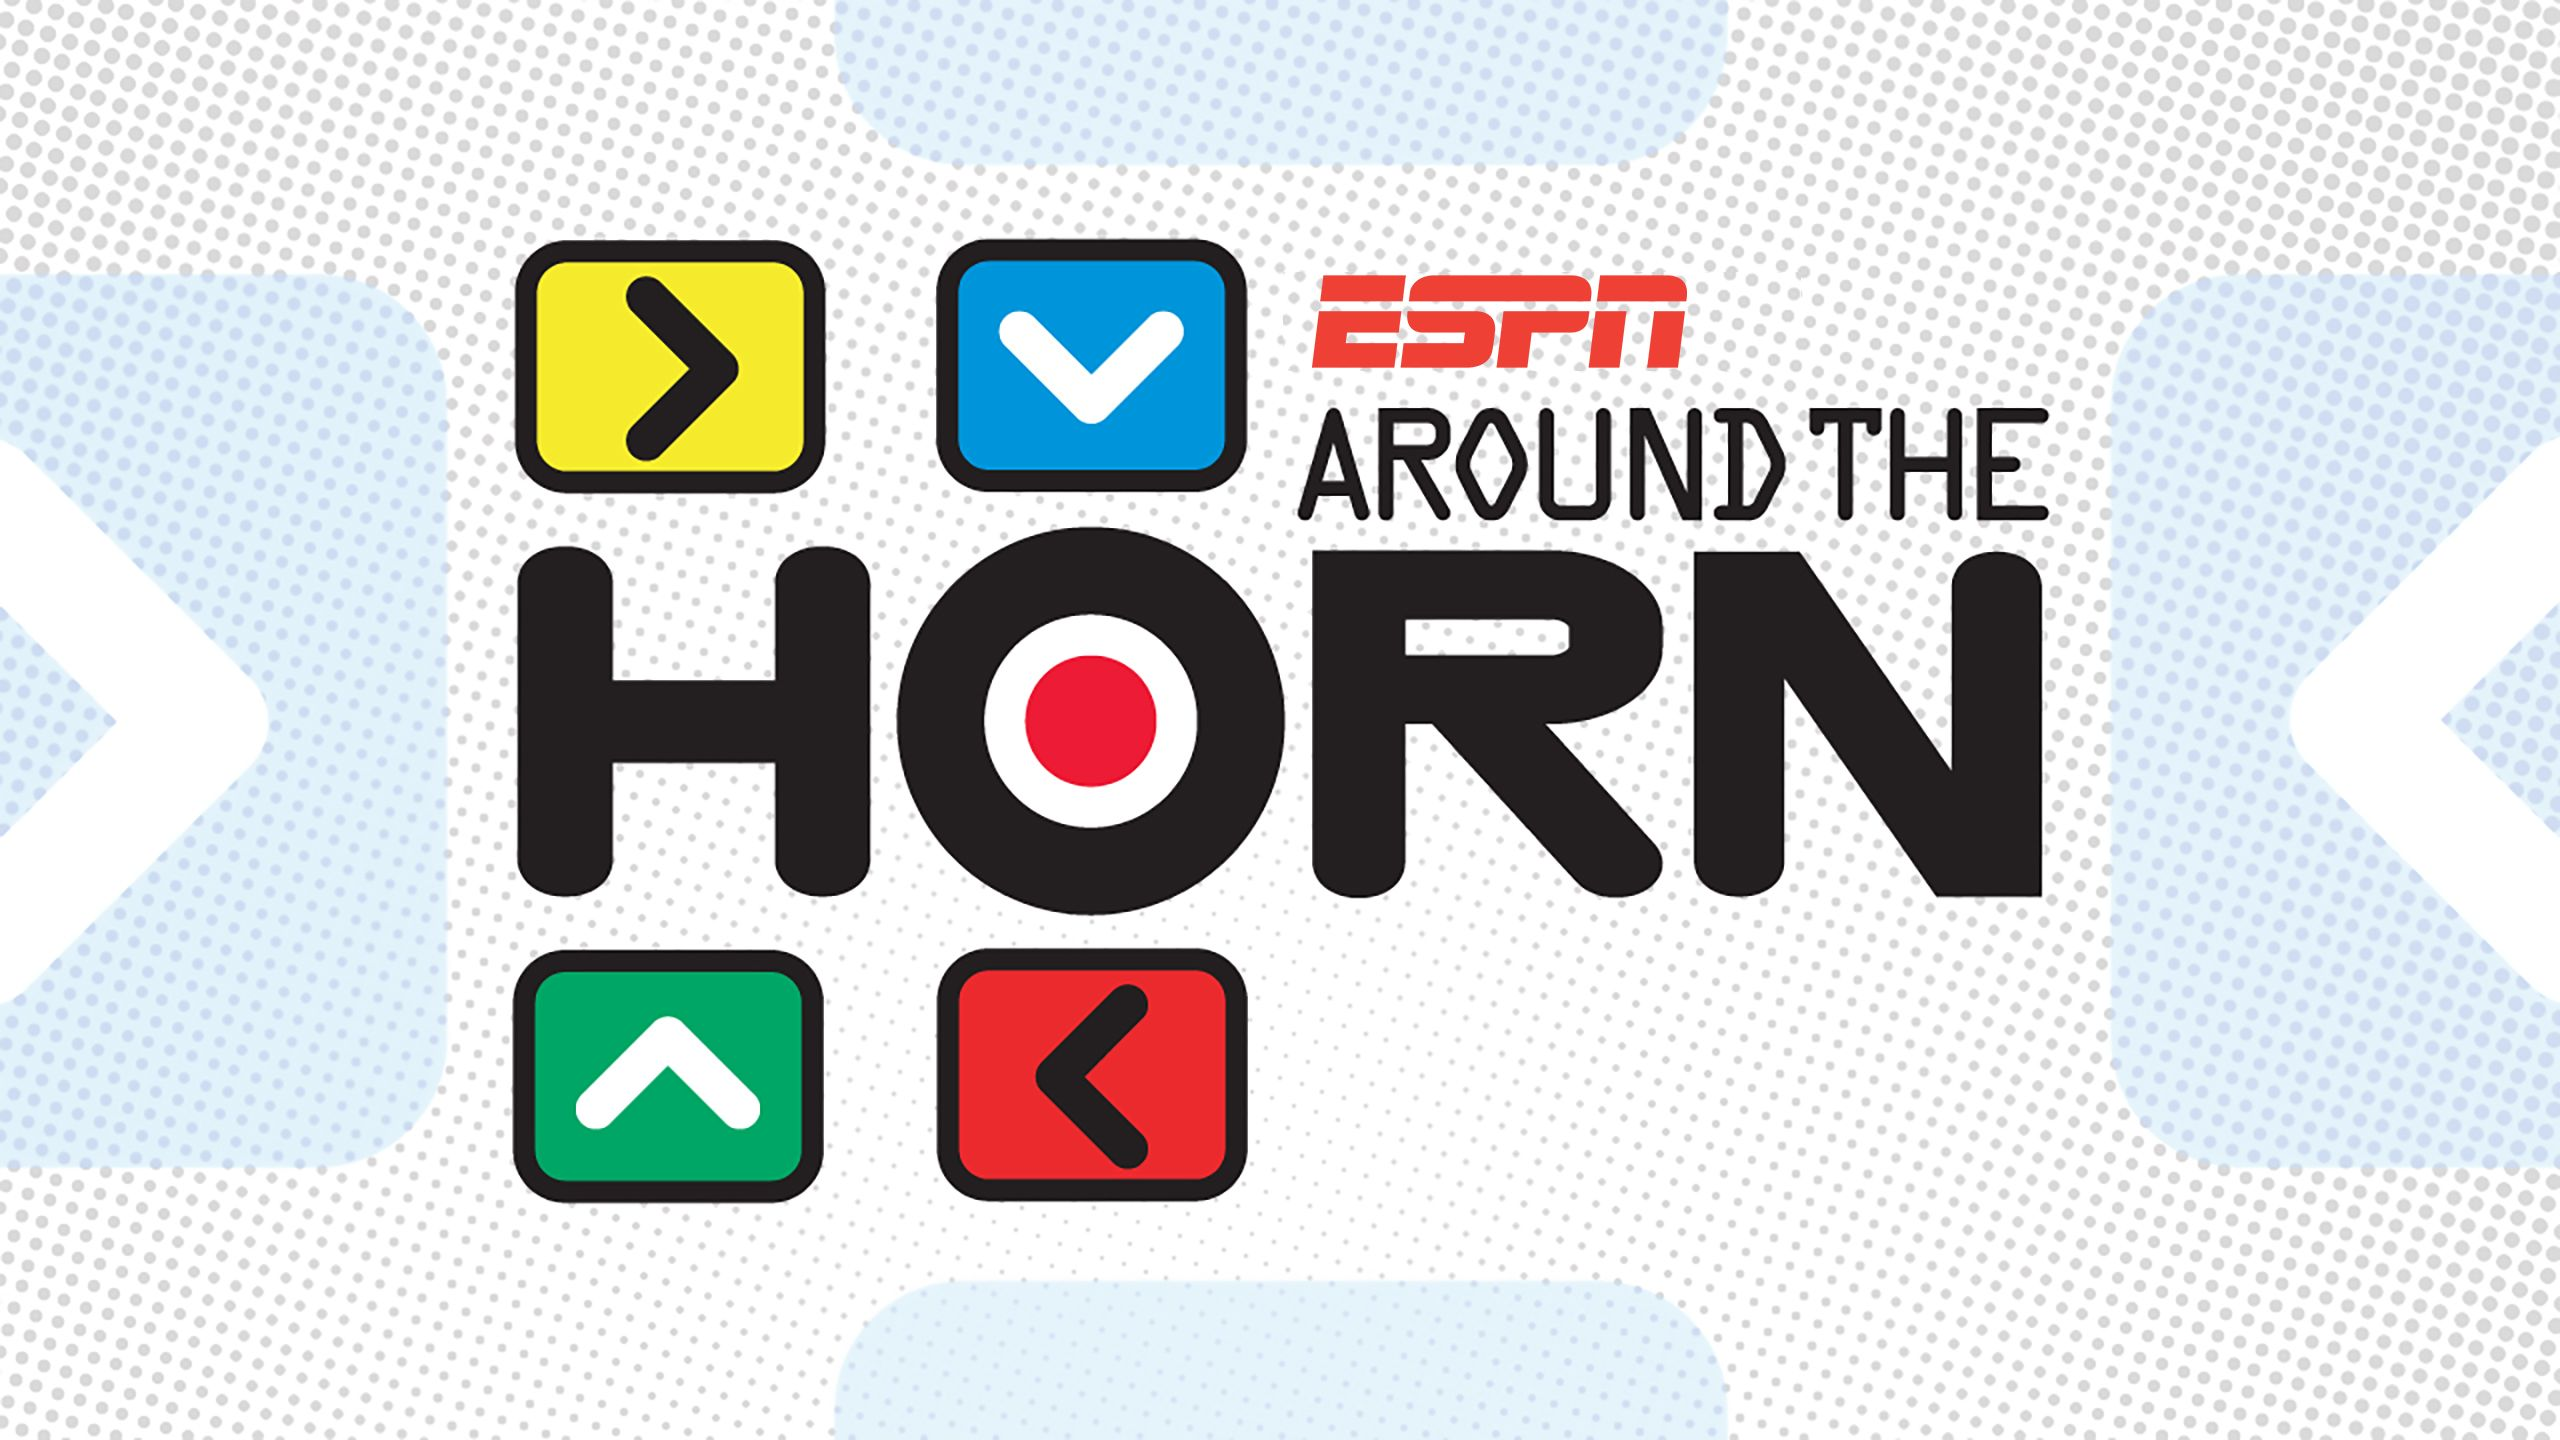 Wed, 4/25 - Around The Horn